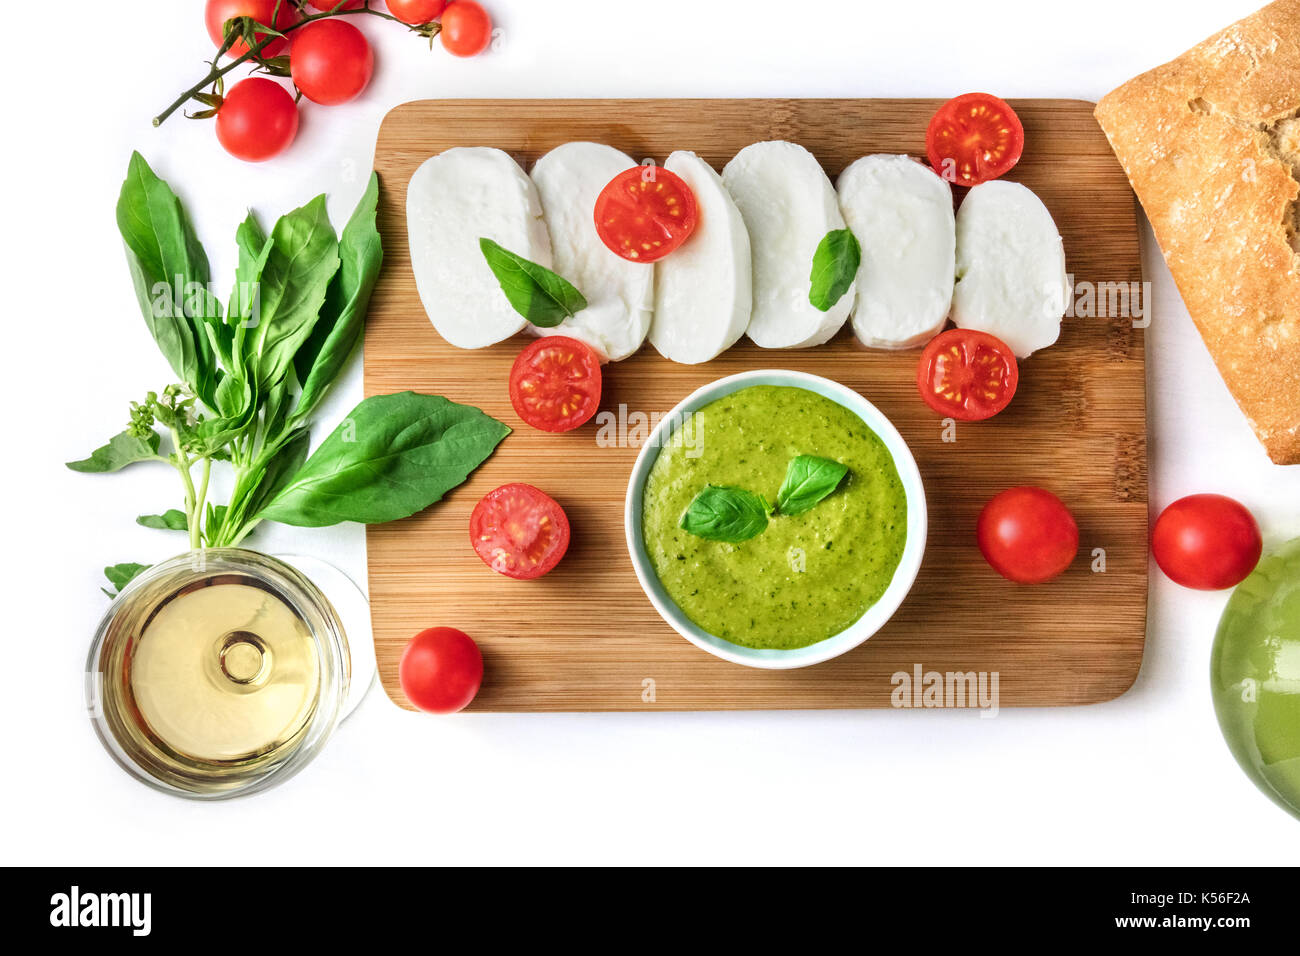 Overhead photo of Italian food products on white - Stock Image